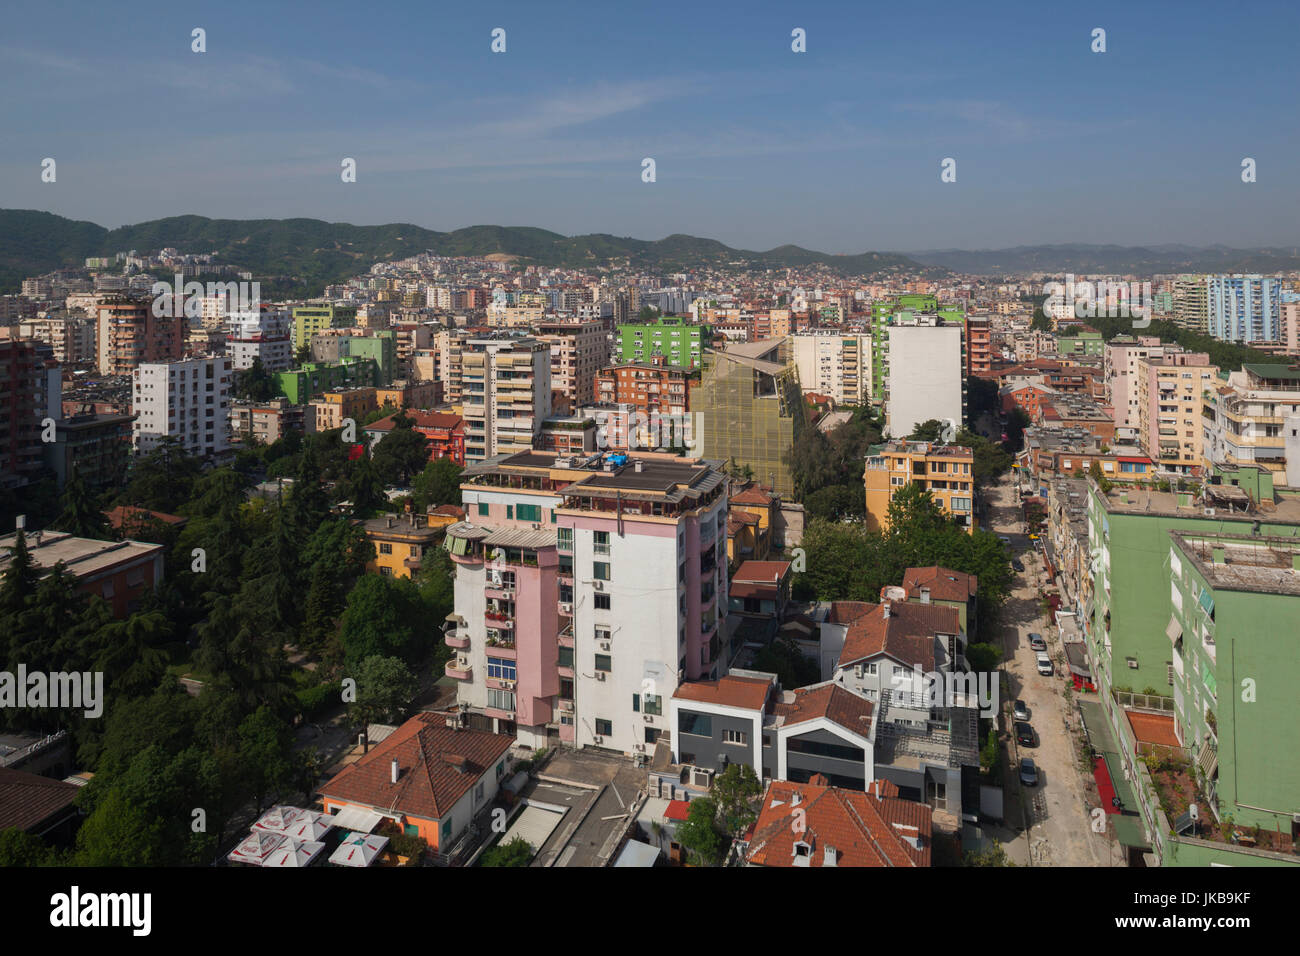 Albania, Tirana, elevated city view Stock Photo